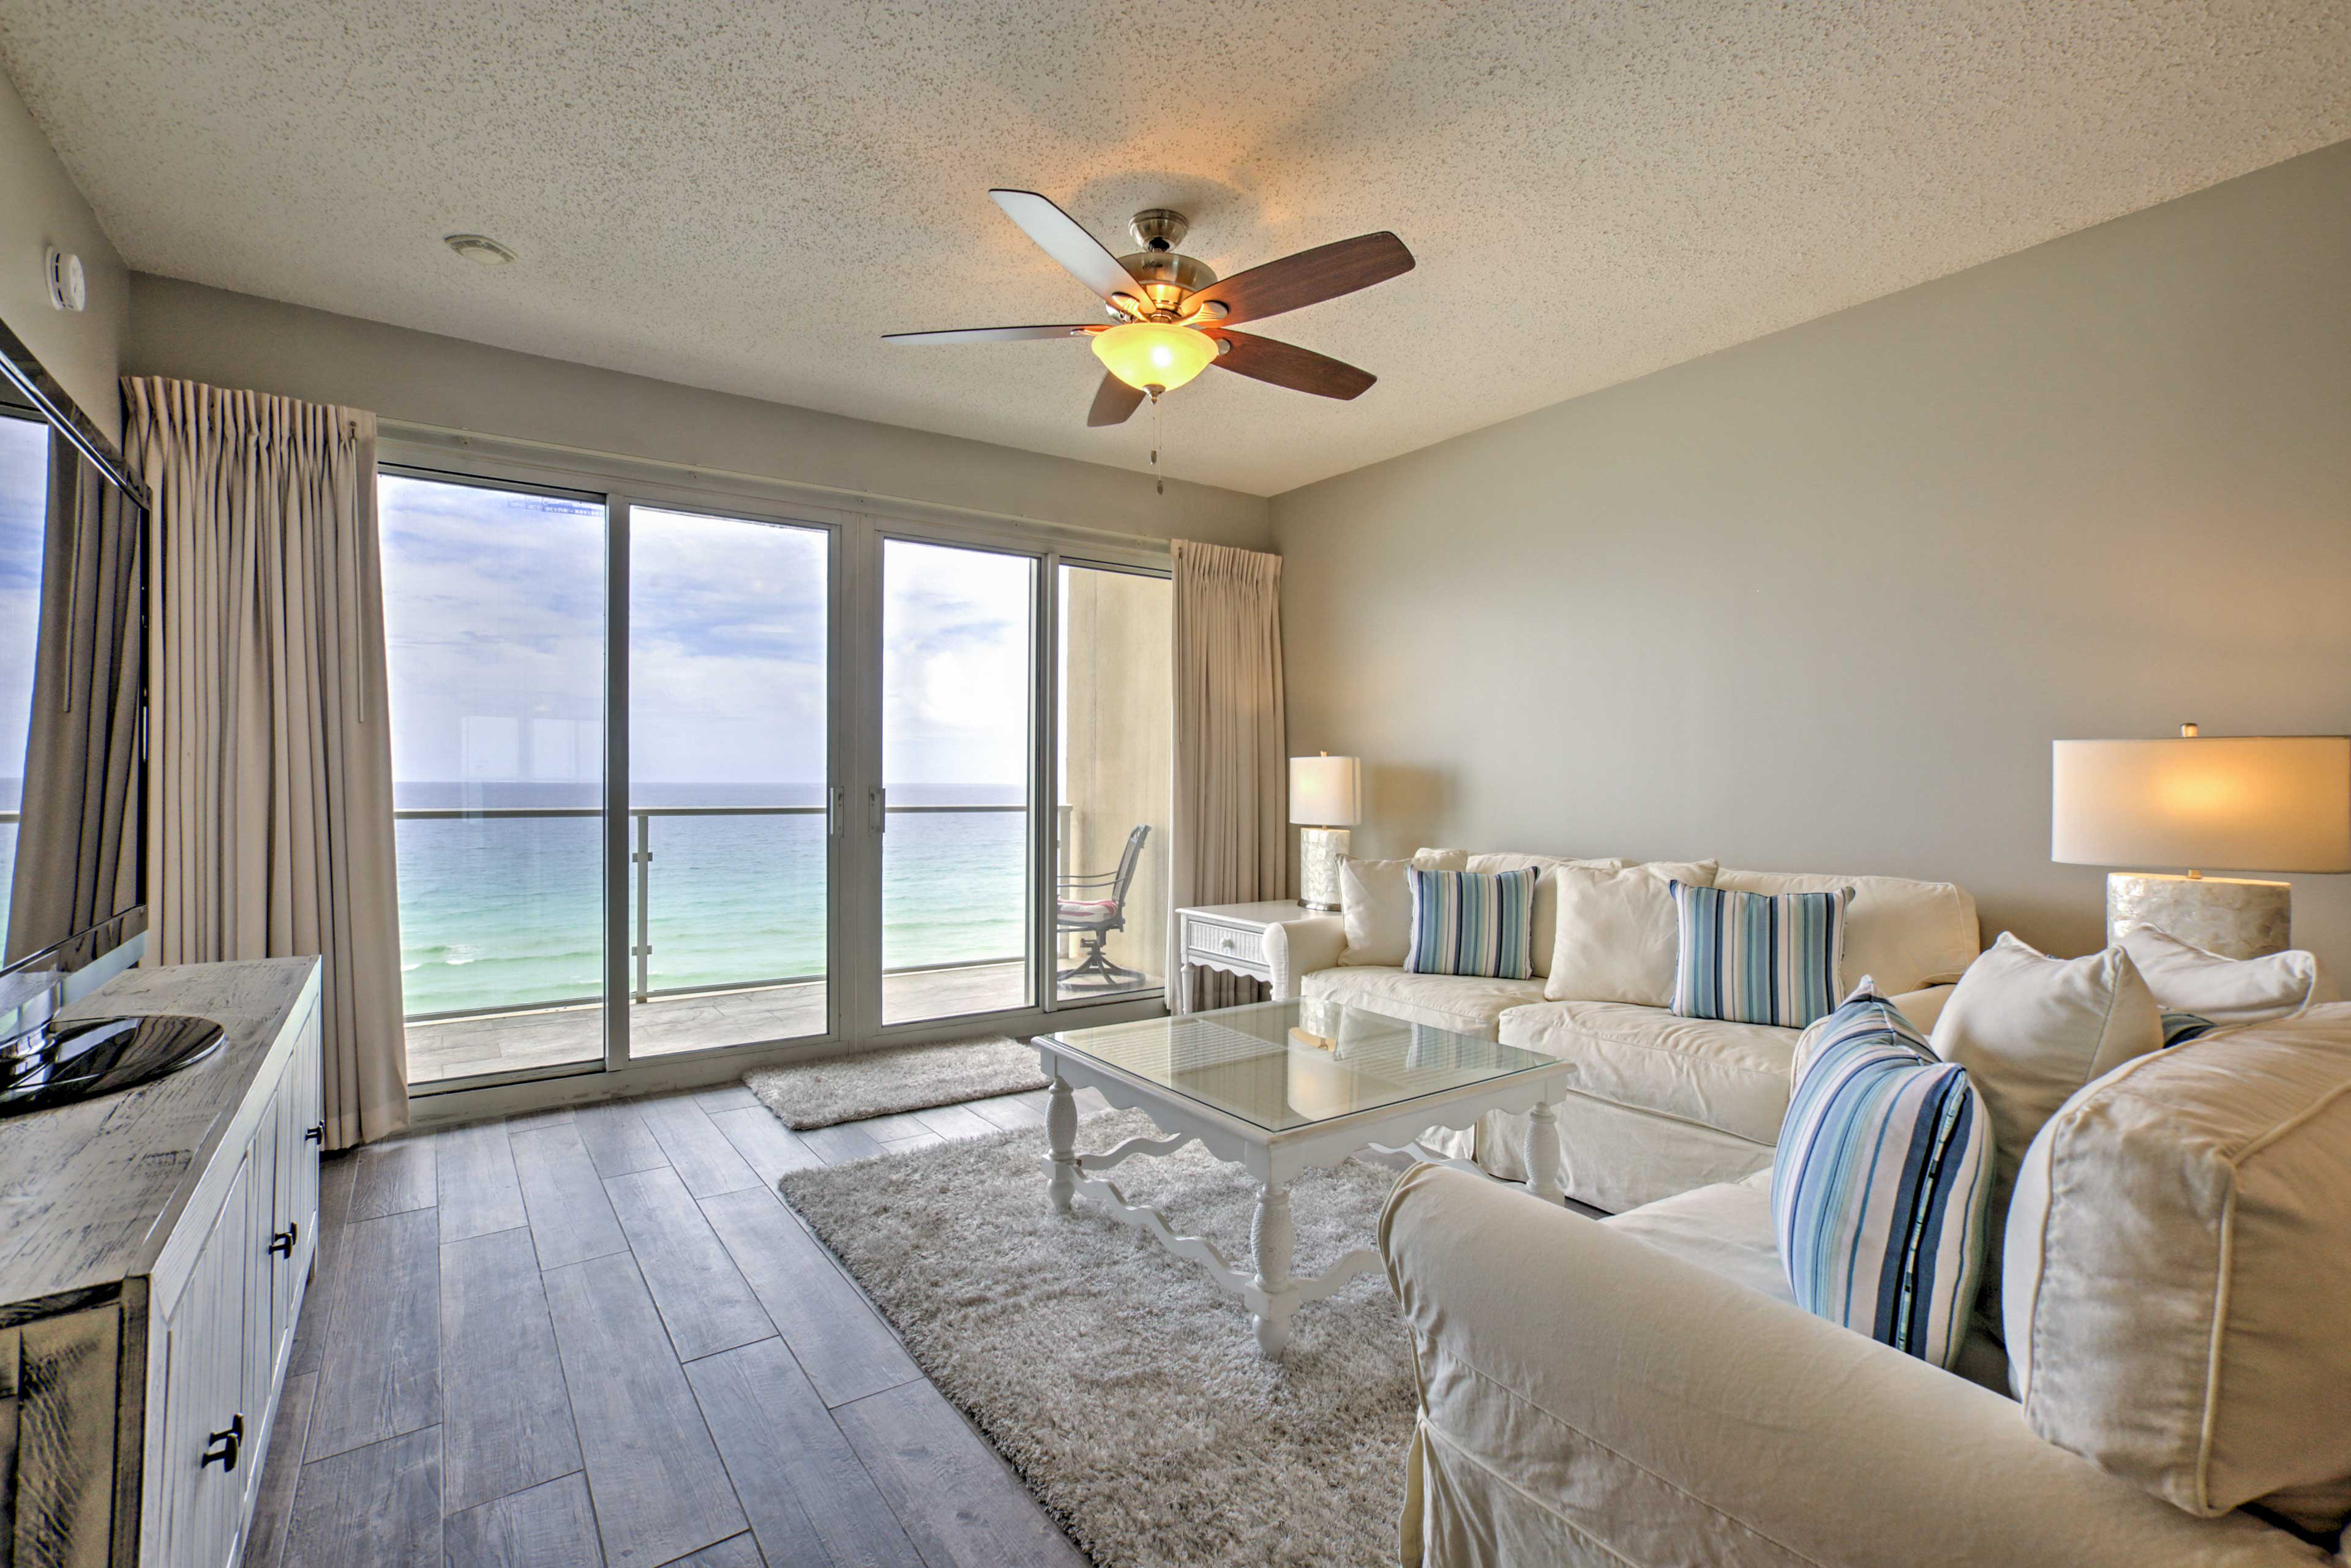 Bask in the gorgeous ocean views from this 2-bed, 2-bath vacation rental condo.